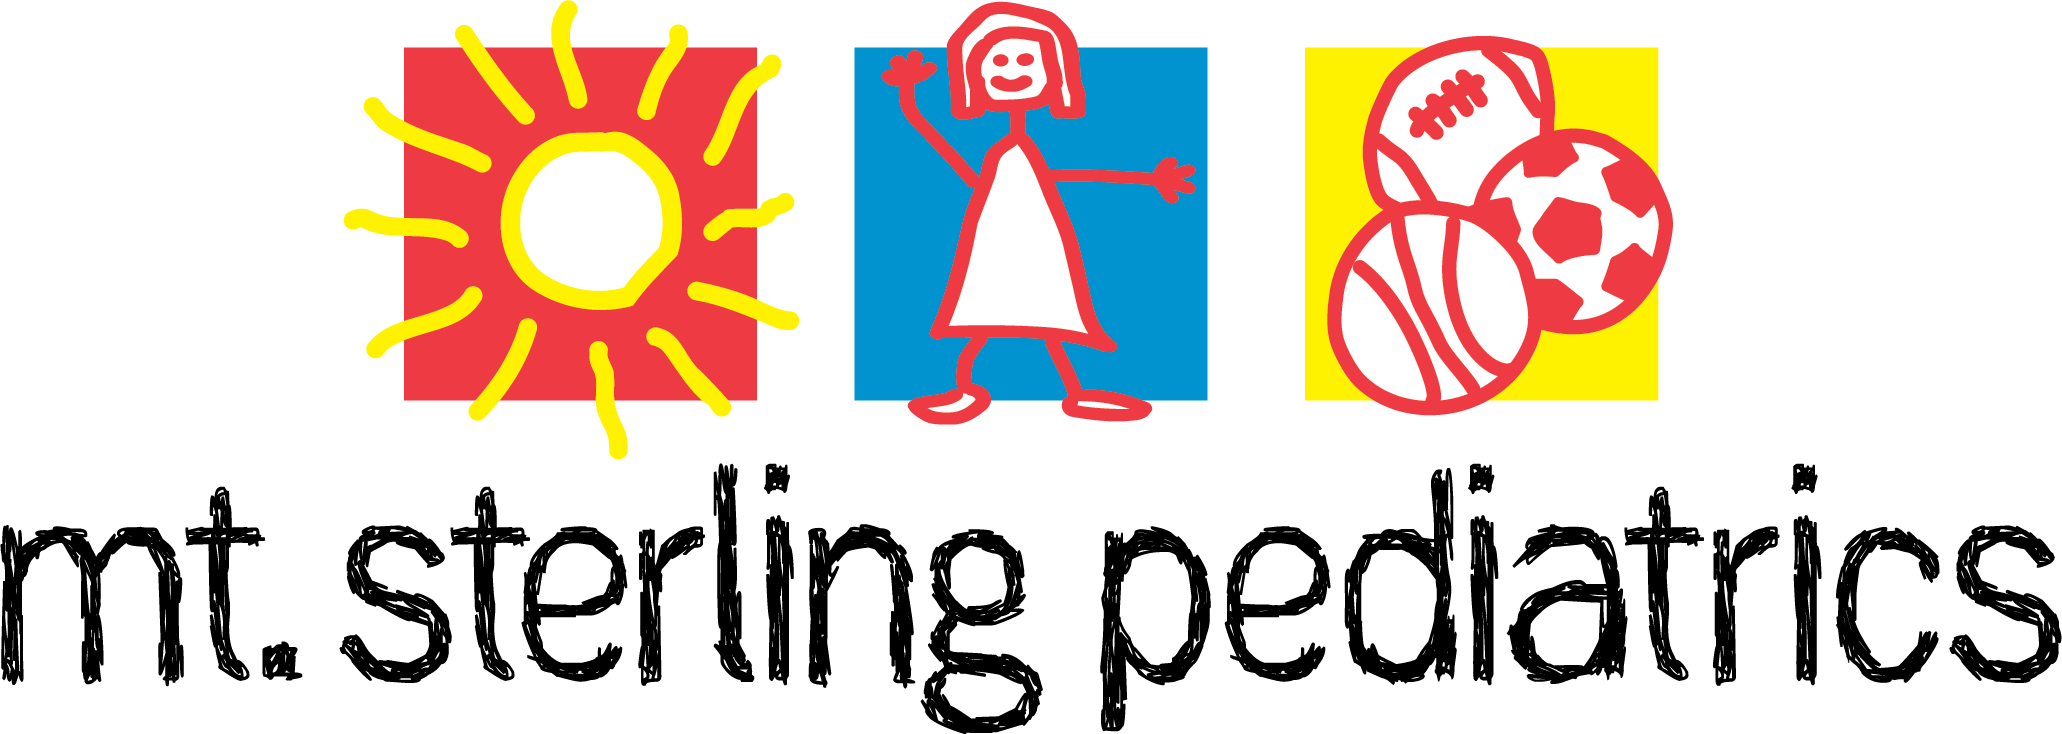 MtSterlingPed_4C-7.png